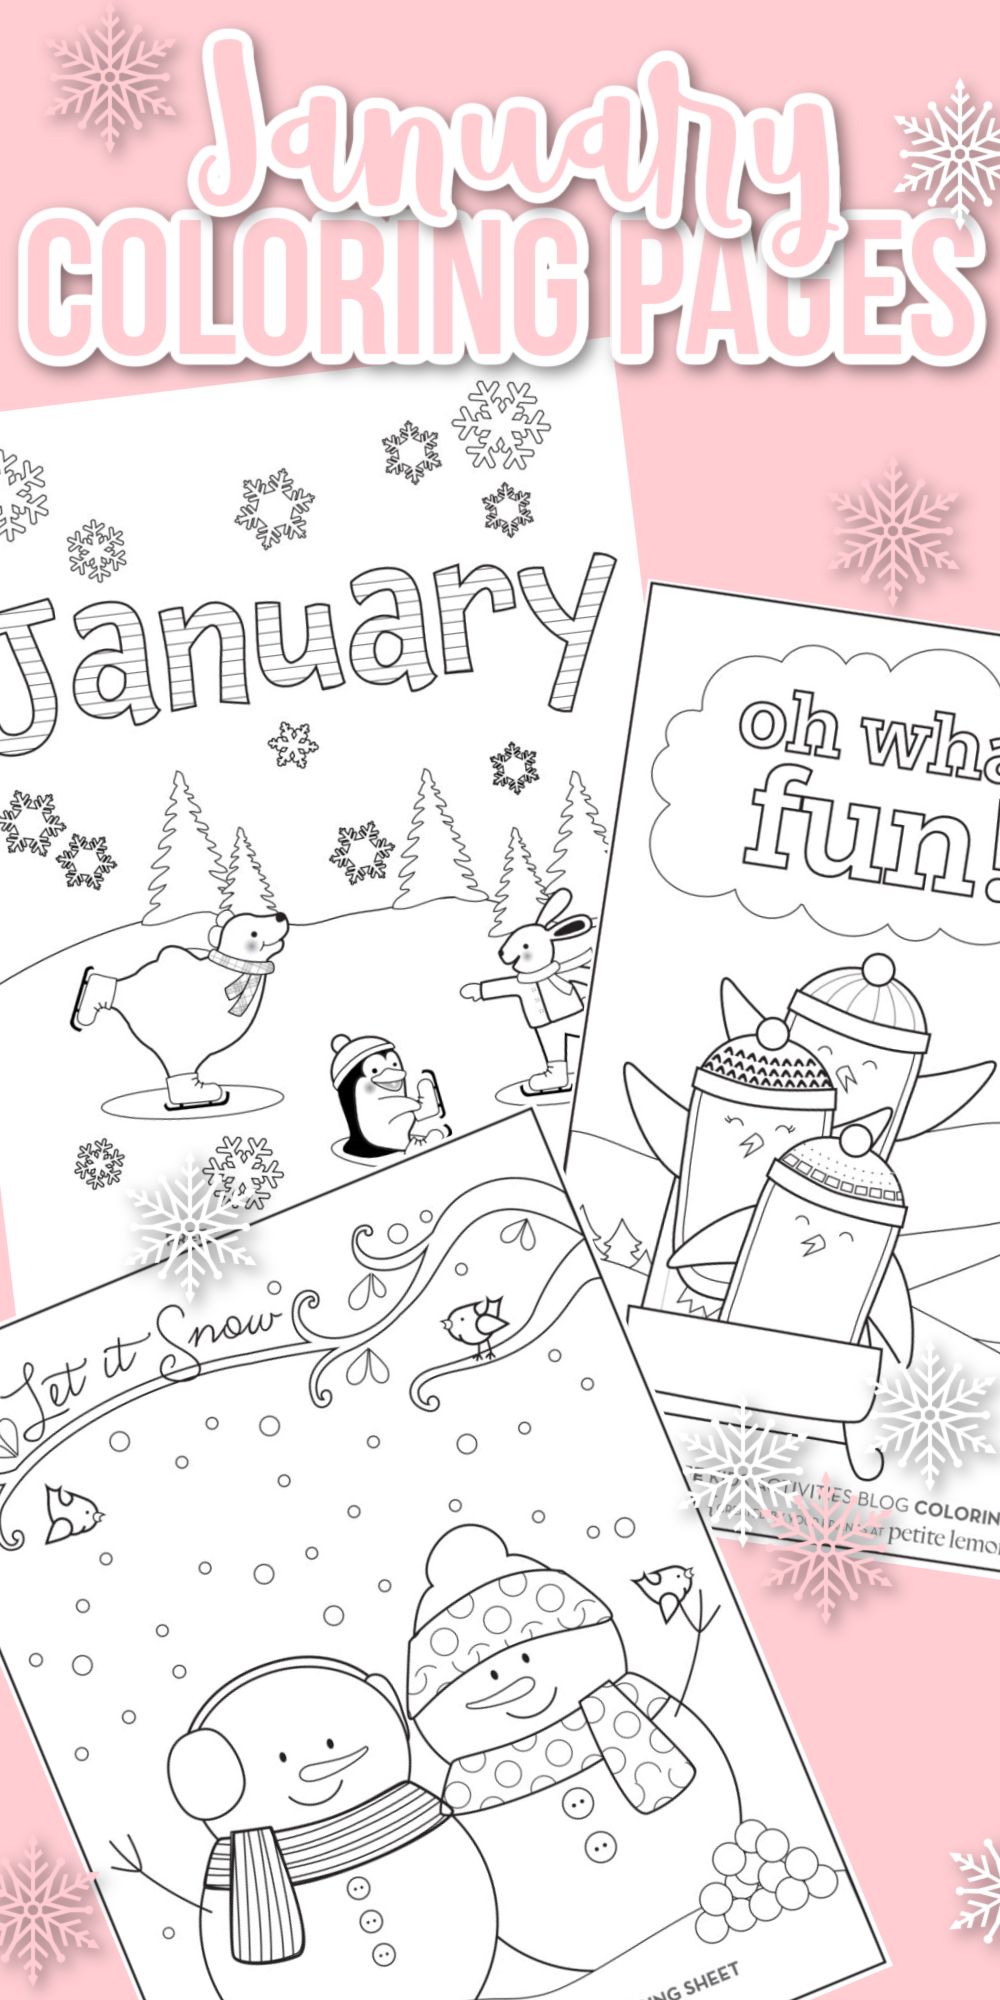 Free January Coloring Pages For Kids In 2021 Kids Printable Coloring Pages Coloring For Kids Free Free Kids Coloring Pages